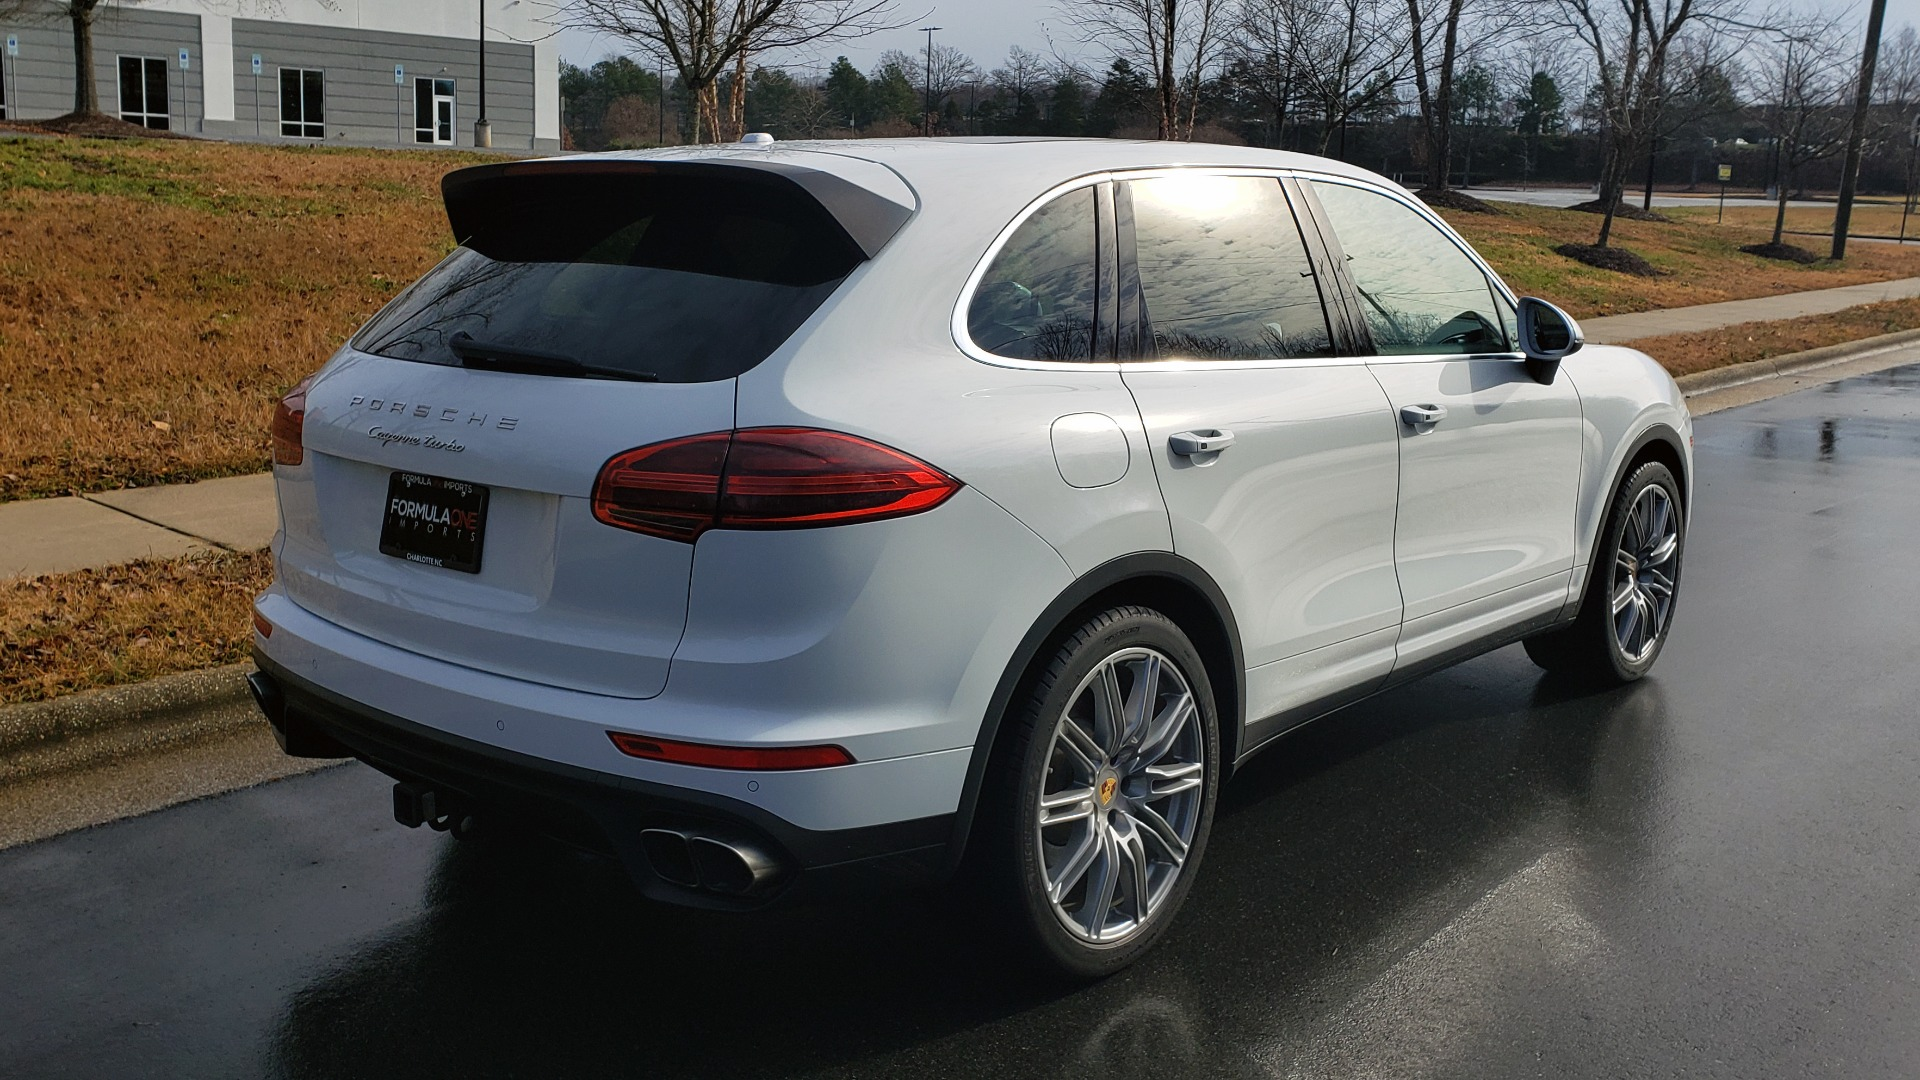 Used 2015 Porsche CAYENNE TURBO V8 / PREMIUM / NAV / SUNROOF / PARK ASSIST / LCA / REARVIEW for sale $47,995 at Formula Imports in Charlotte NC 28227 10